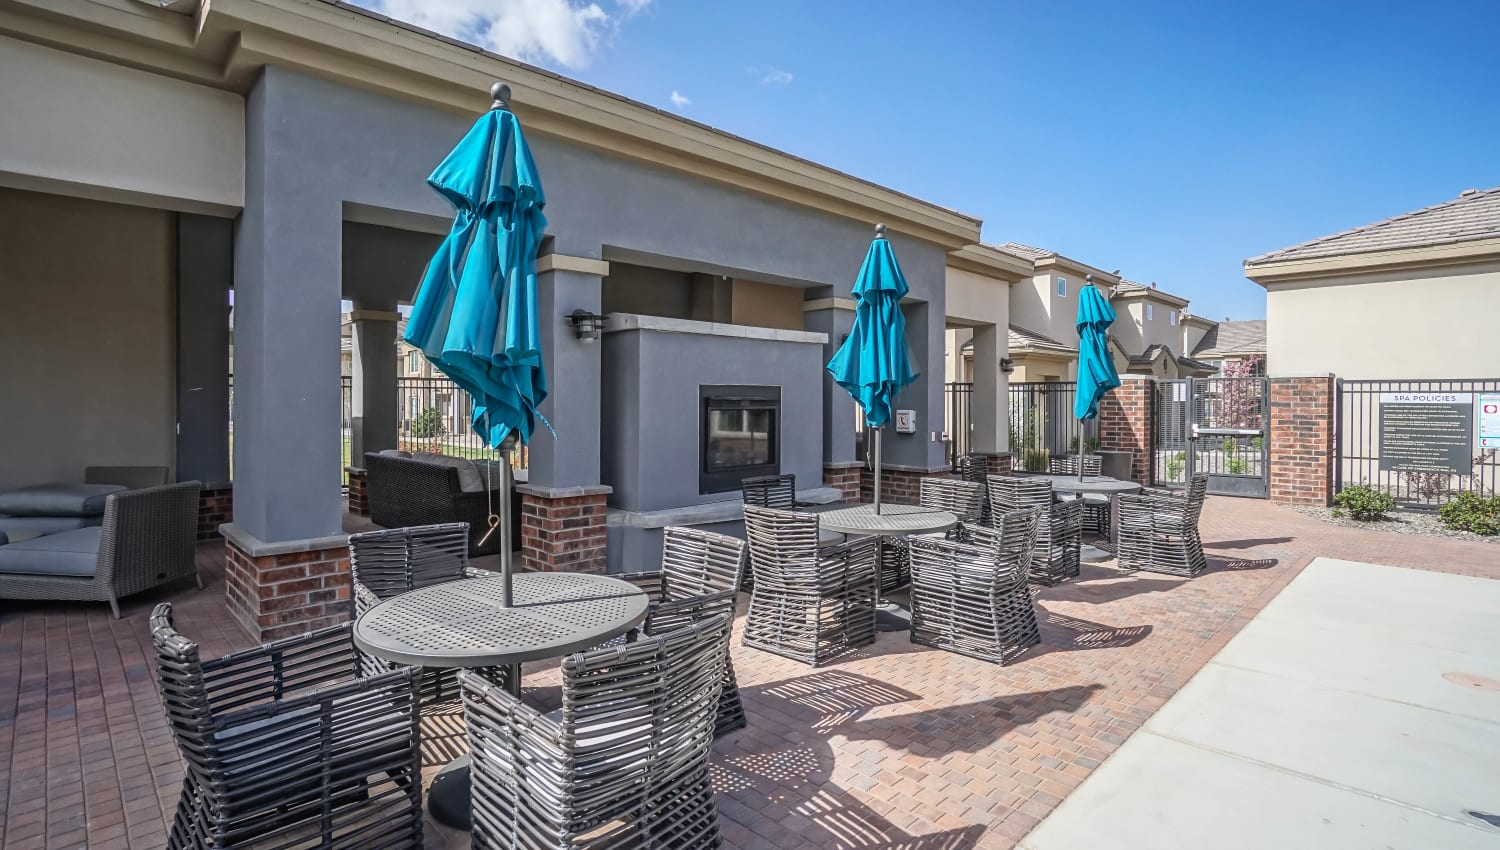 Outdoor fireplace and lounge area at Olympus Northpoint in Albuquerque, New Mexico